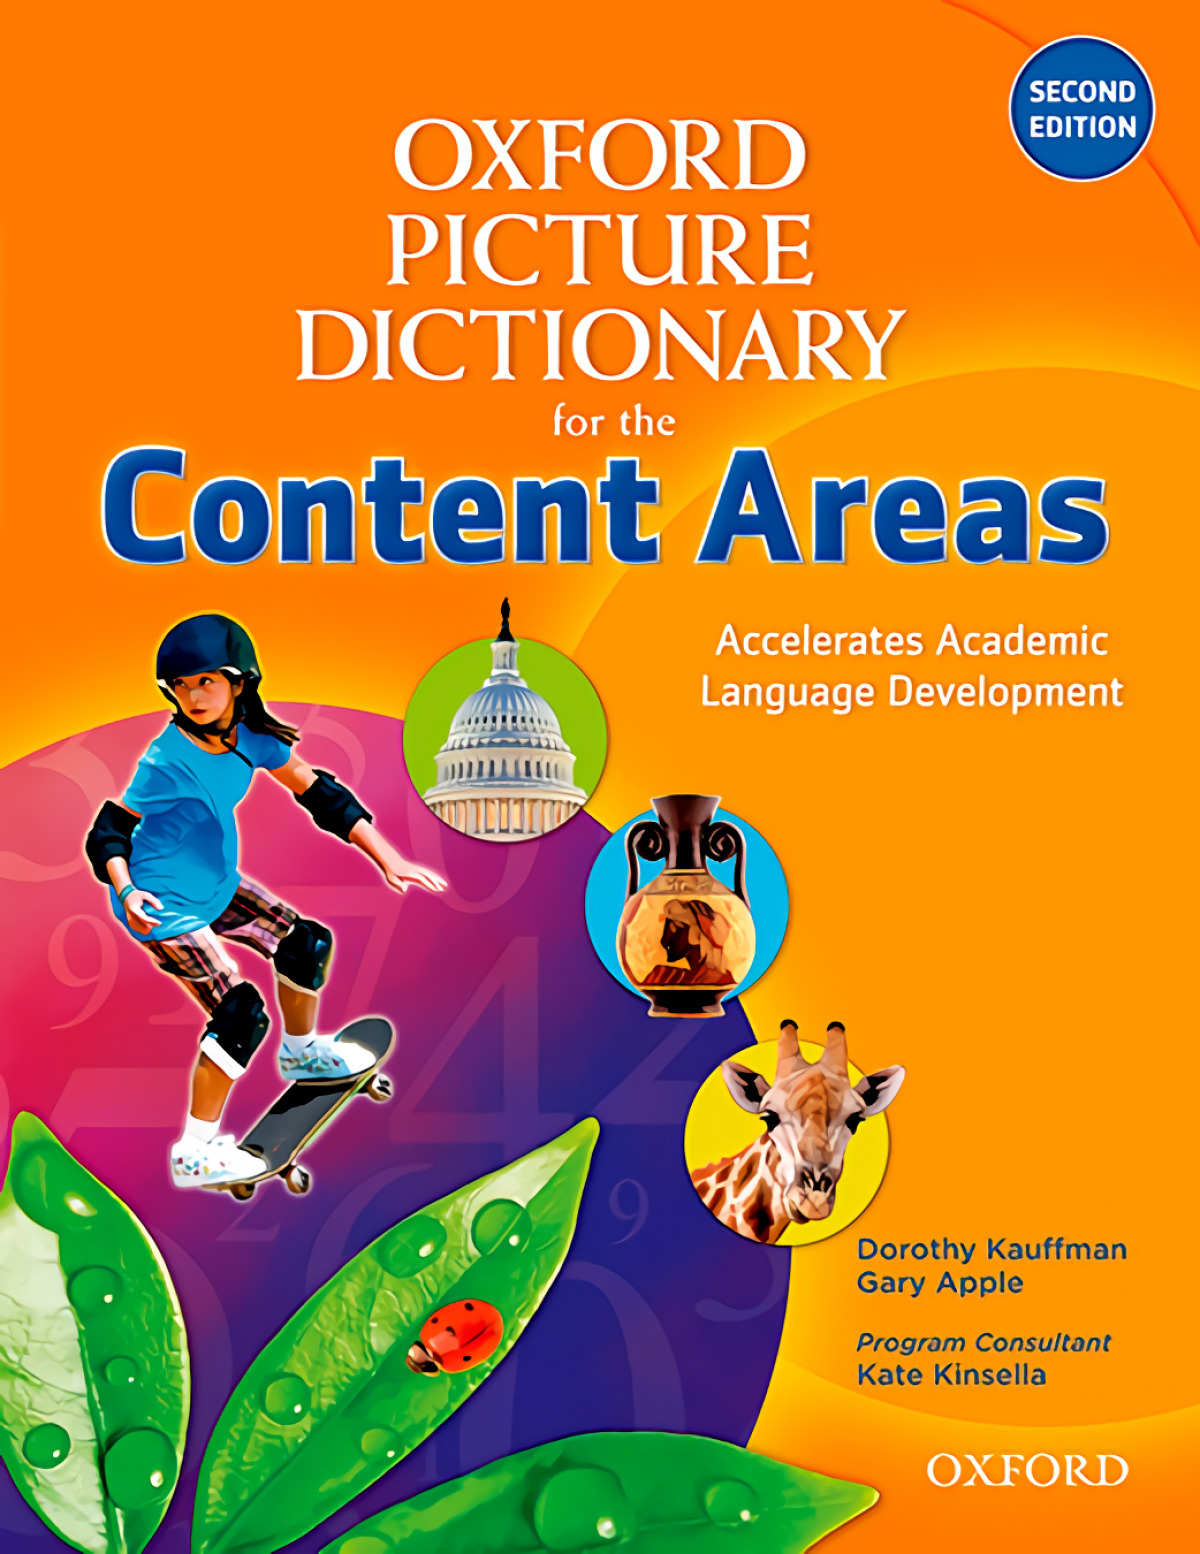 The Oxford Picture Dictionary for the Content Areas. Monolin 9780194525008